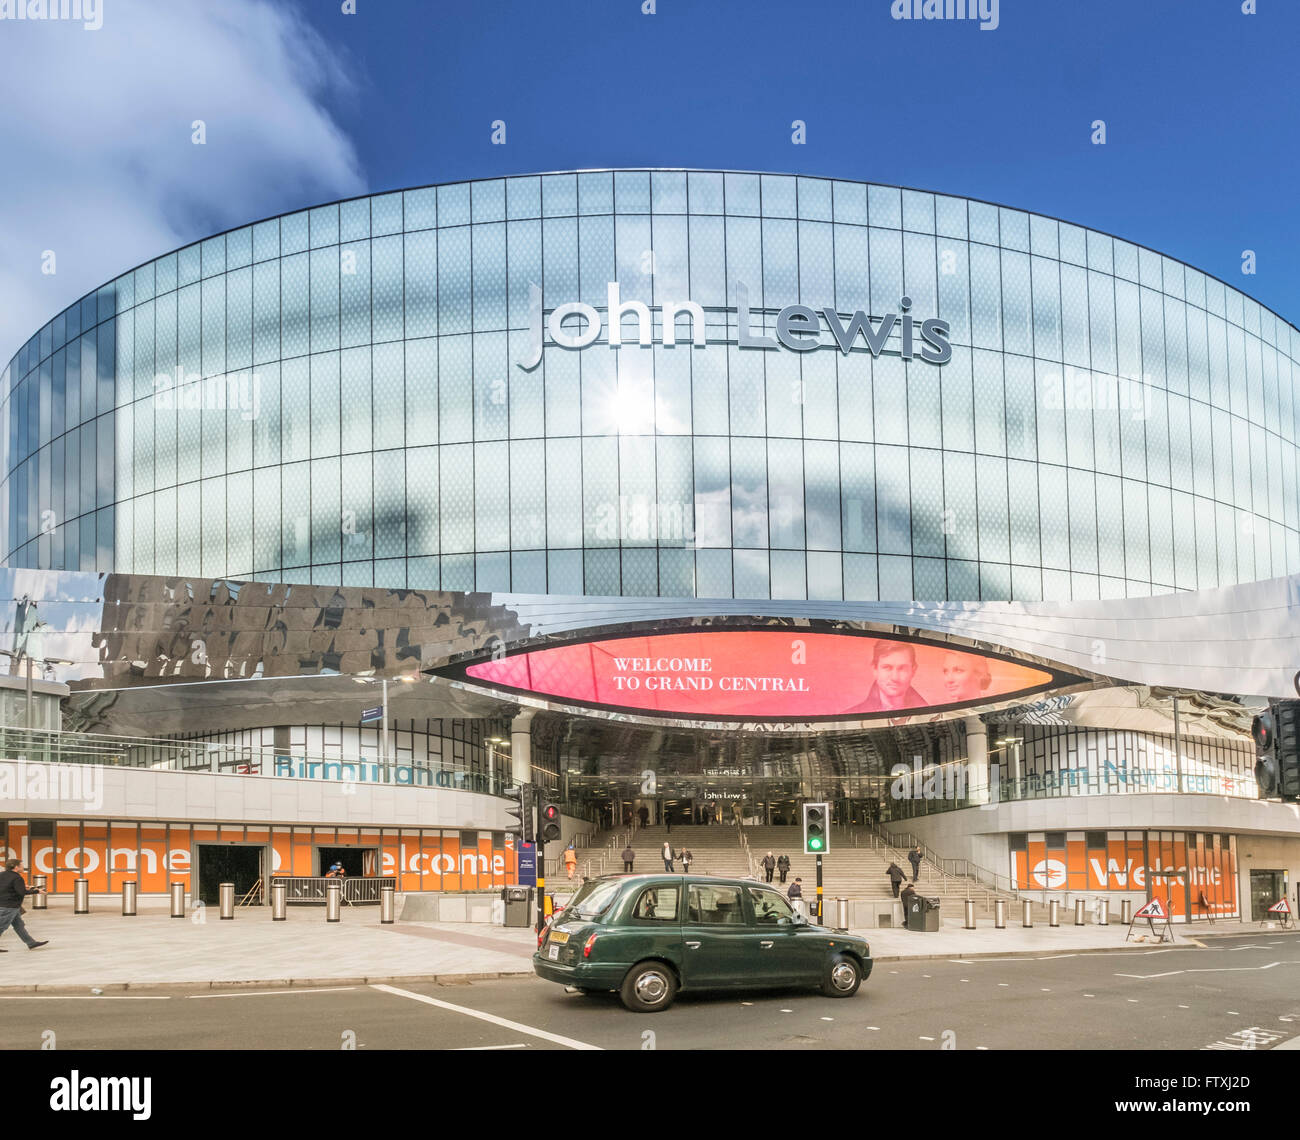 John Lewis store at Grand Central, Birmingham. For editorial usage. - Stock Image